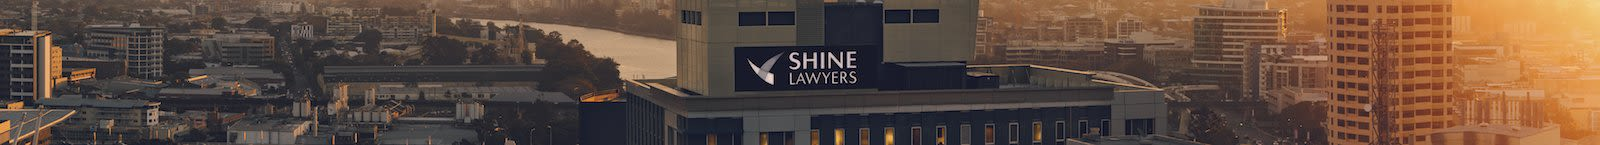 Shine Lawyers | Aviation lawyers Australia | Shine Lawyers